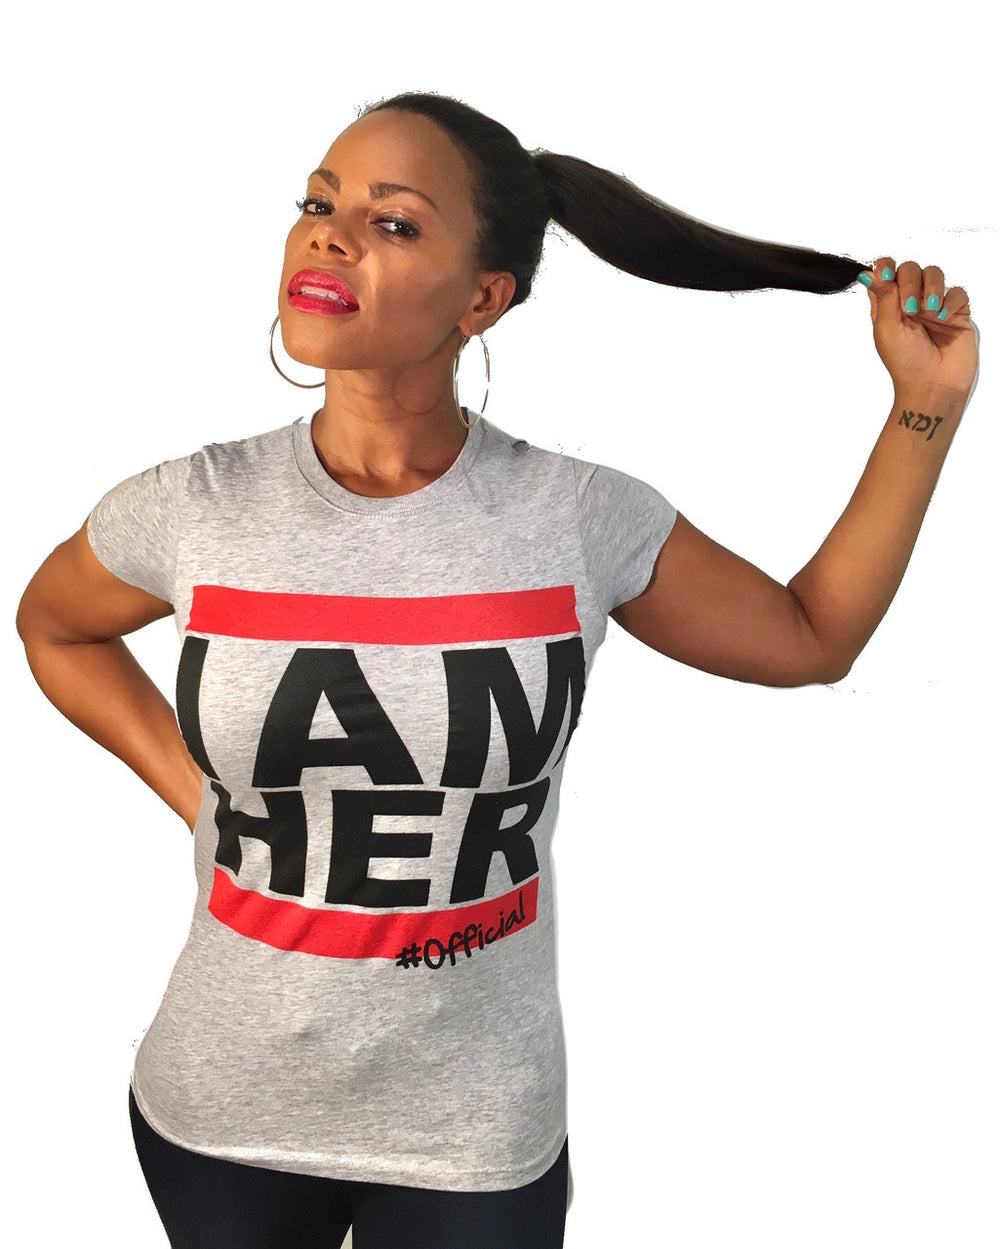 I AM HER #Official - Women's Statement Fitted Tee - Heather Gray